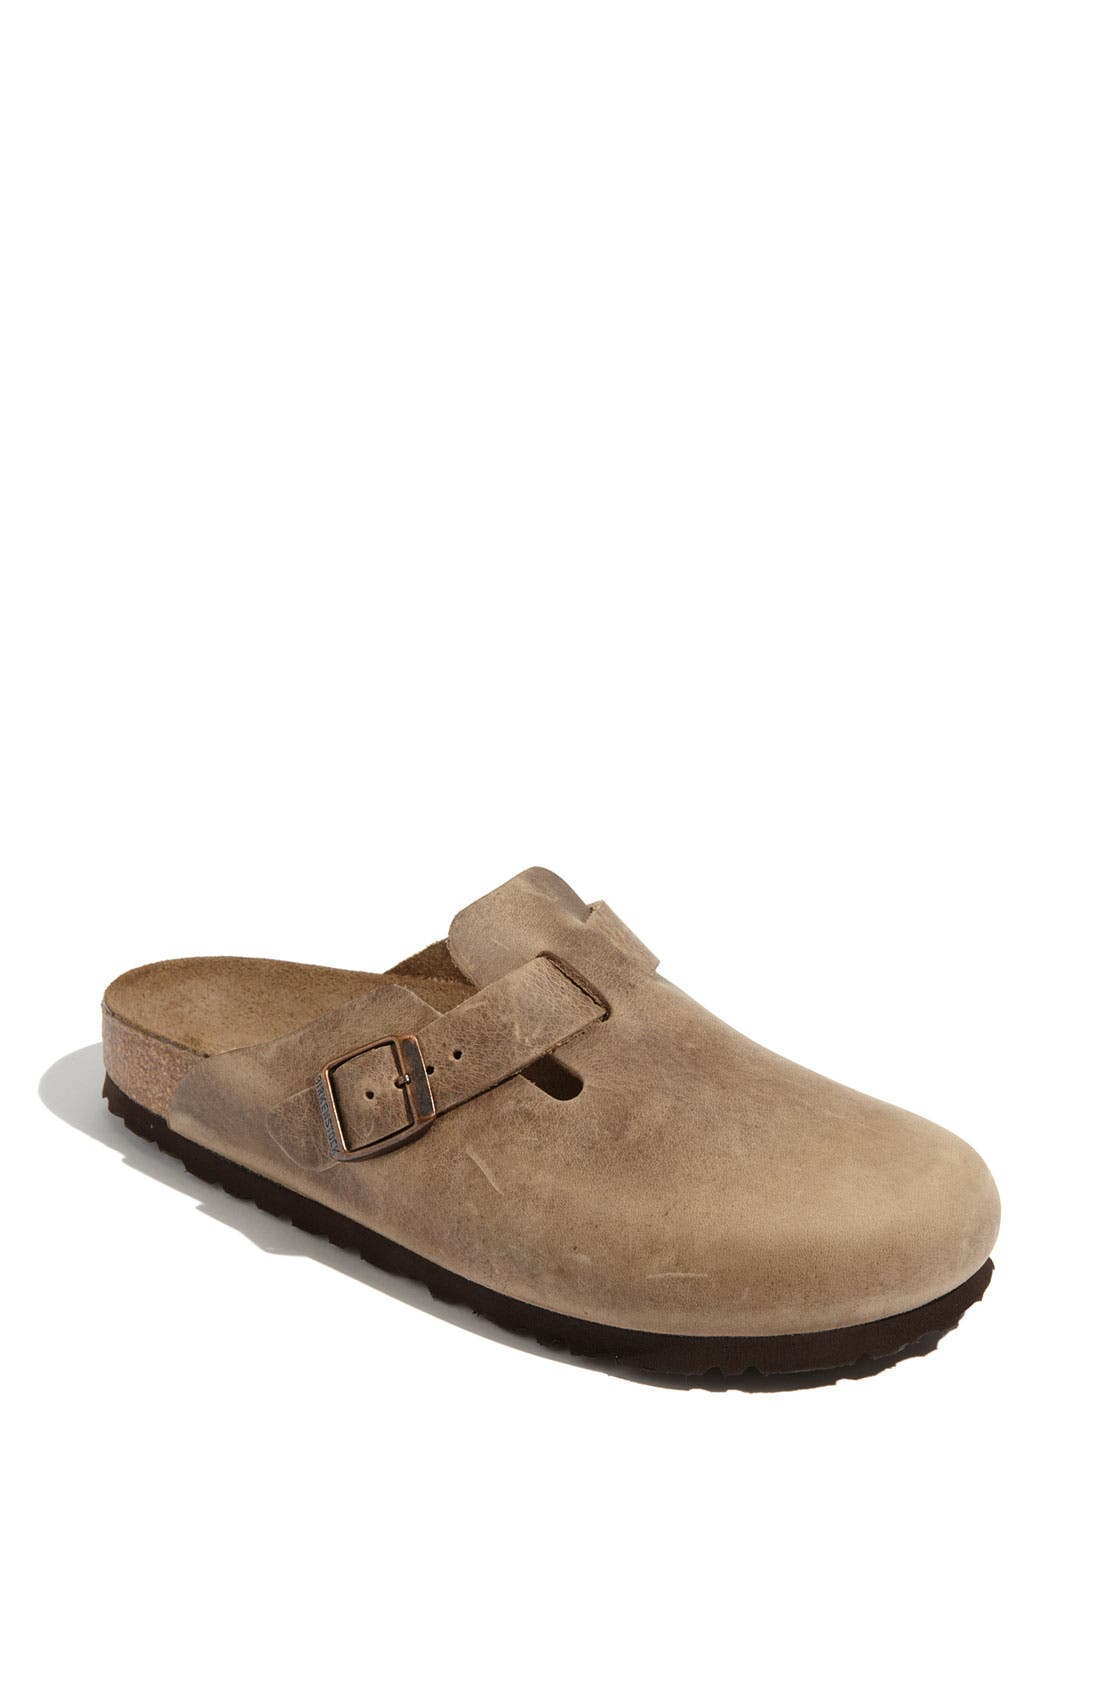 Alternate Image 1 Selected - Birkenstock 'Boston' Classic Oiled Leather Clog (Women)